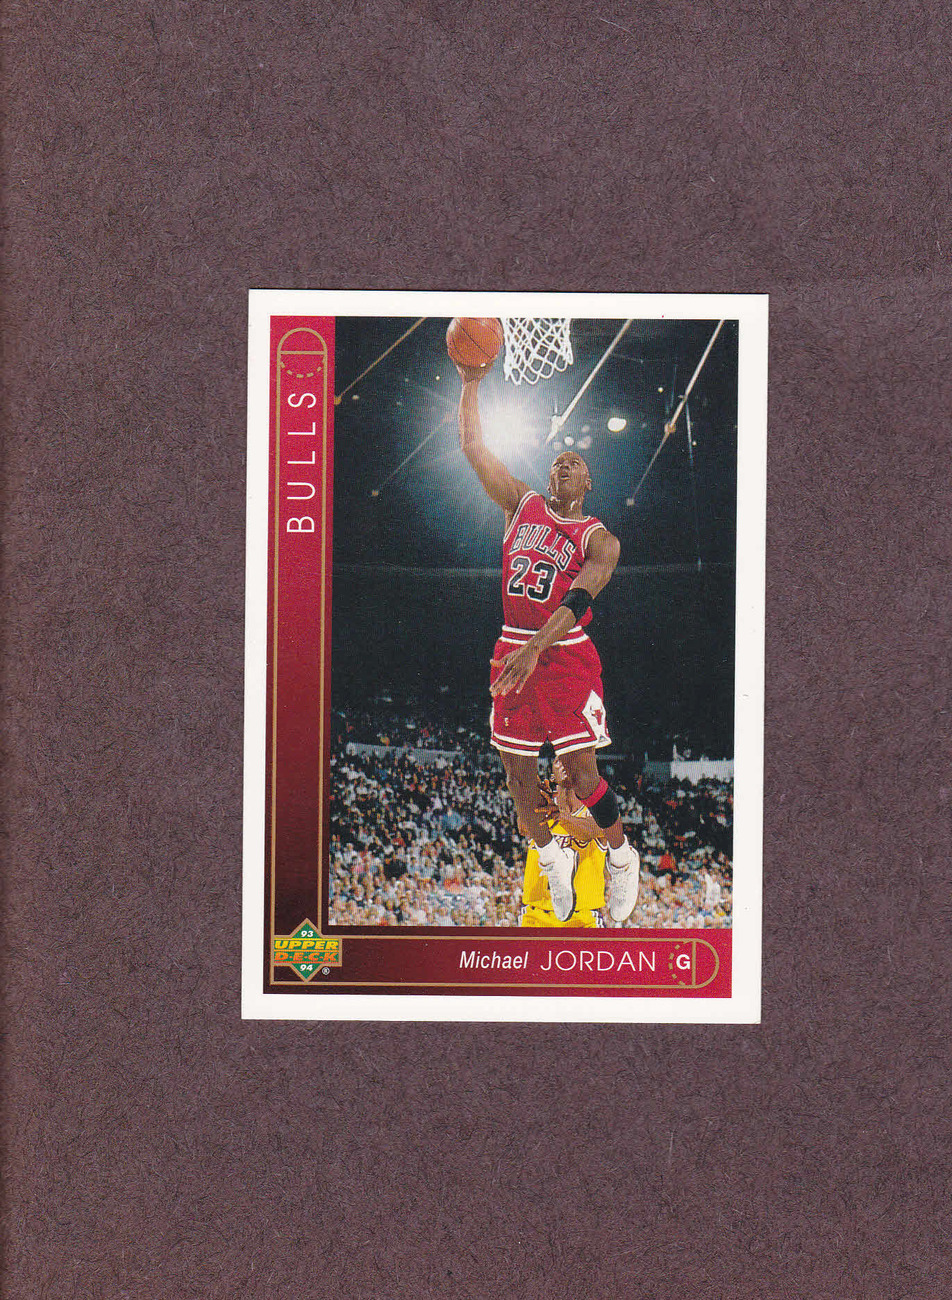 1993-94 Upper Deck # 23 Michael Jordan Chicago Bulls NM